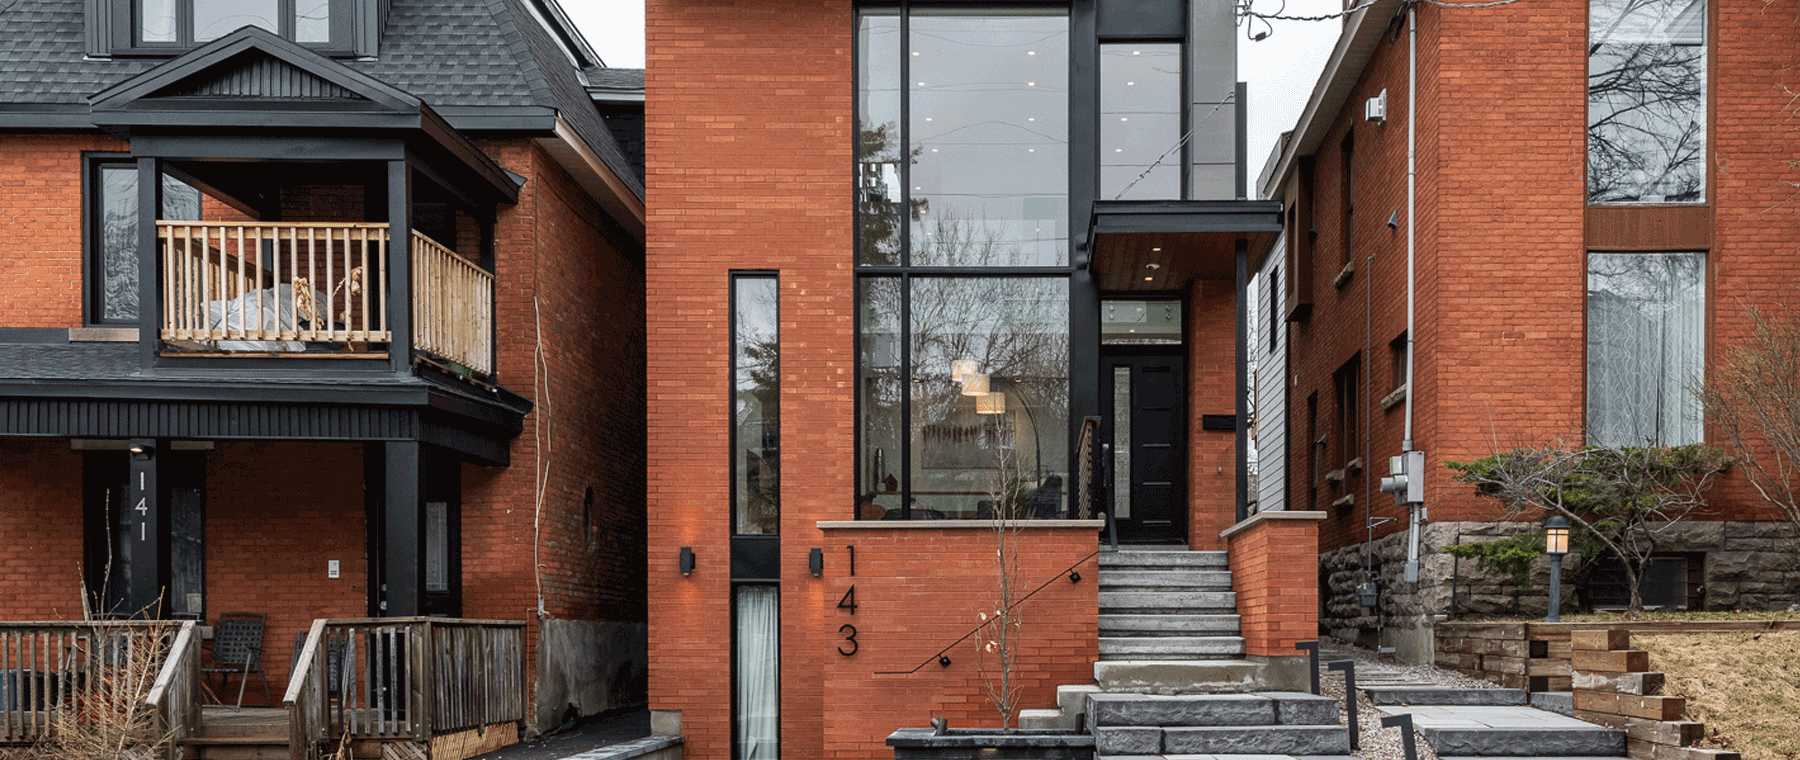 Sale of the Week: $1.49 million for an architect-designed infill on Bayswater Avenue